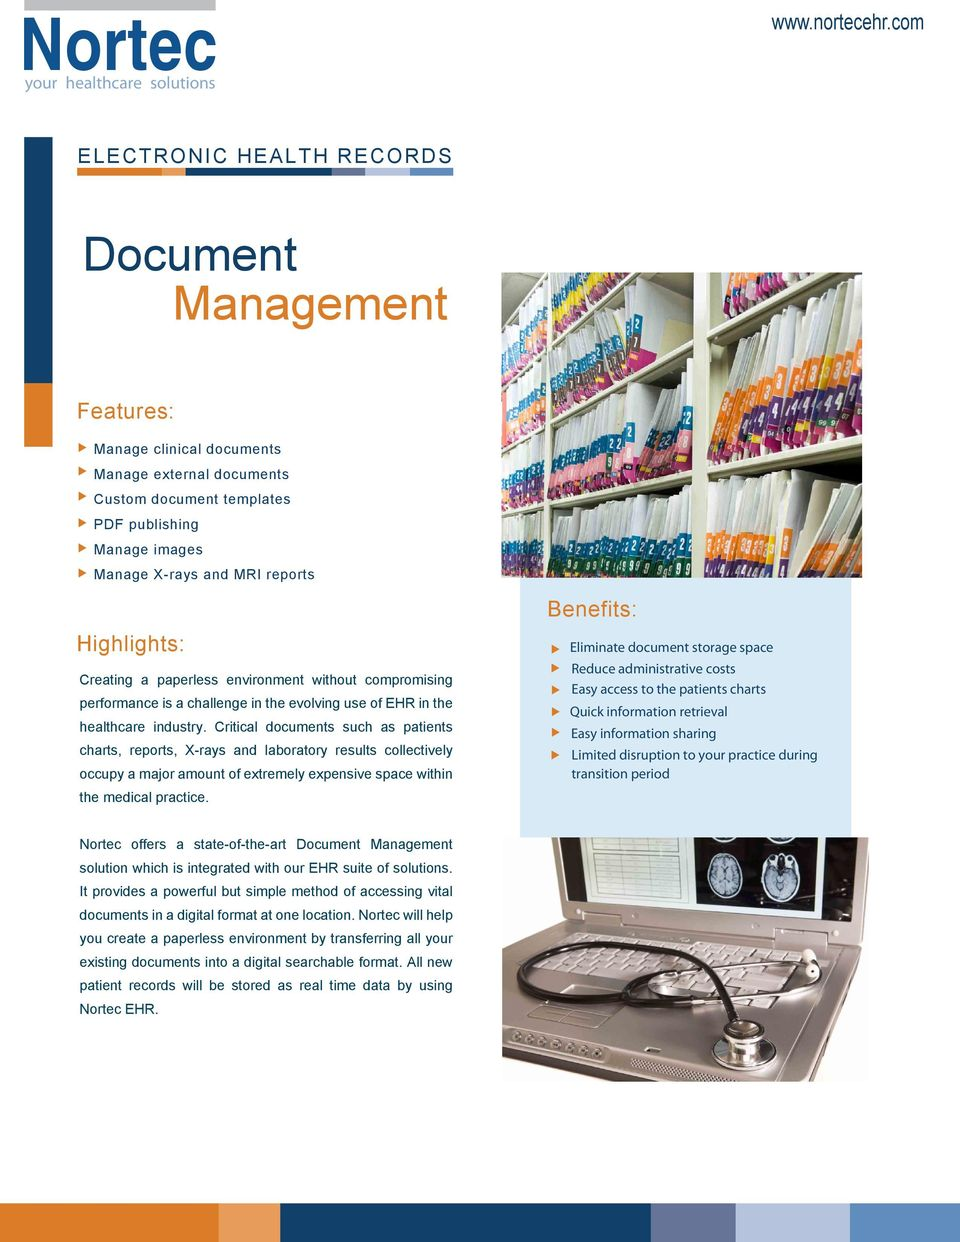 Critical documents such as patients charts, reports, X-rays and laboratory results collectively occupy a major amount of extremely expensive space within the medical practice.